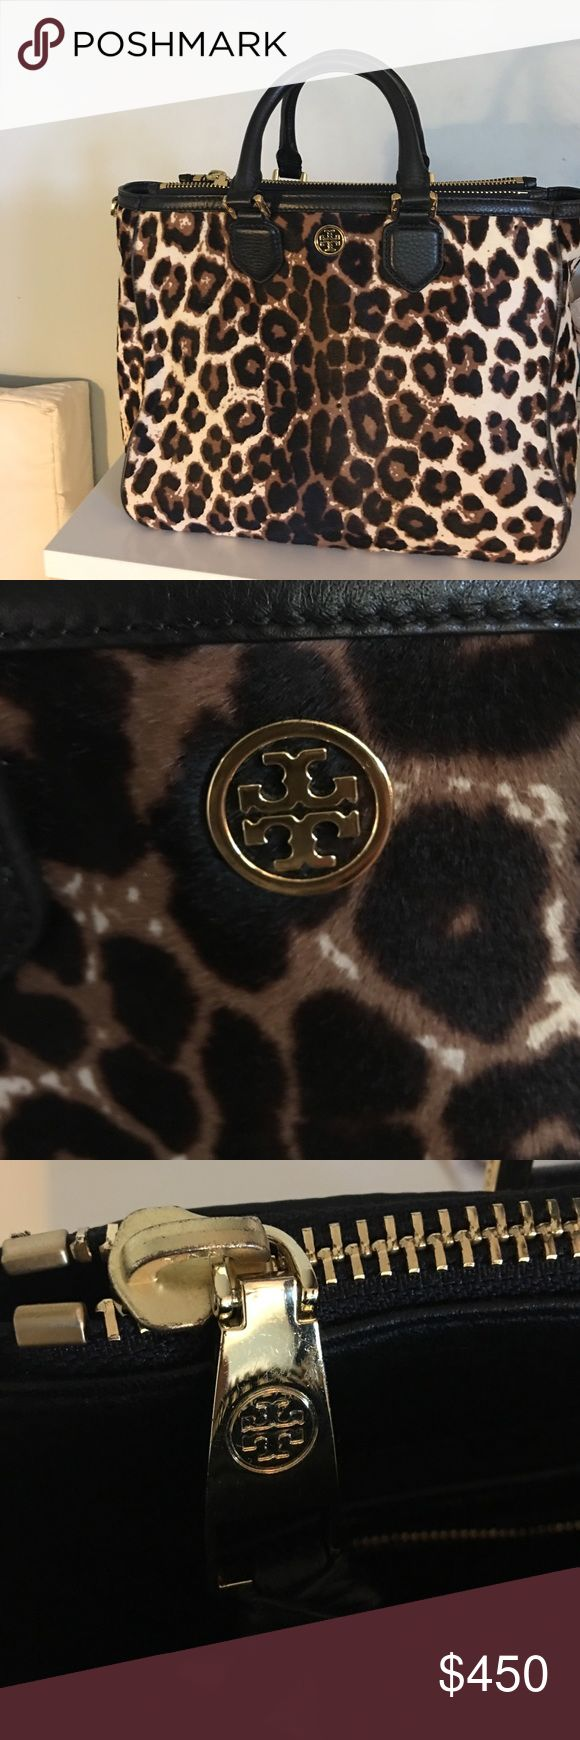 "Tory Burch Leopard Robinson Tote Gorgeous, used only once, Tory Butch pony hair tote. The perfect size, deceptively roomy, this bag is sold out everywhere and impossible to find. Height 10"", width 12"", depth 6inch. Comes with adjustable black leather cross body strap. This bag is in perfect condition! Tory Burch Bags Totes"